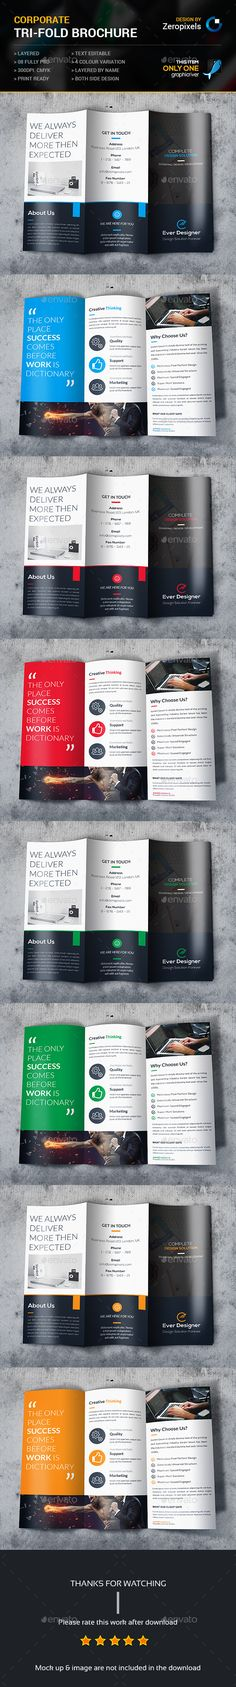 Trifold Brochure Template PSD. Download here: http://graphicriver.net/item/trifold-brochure/15262425?ref=ksioks